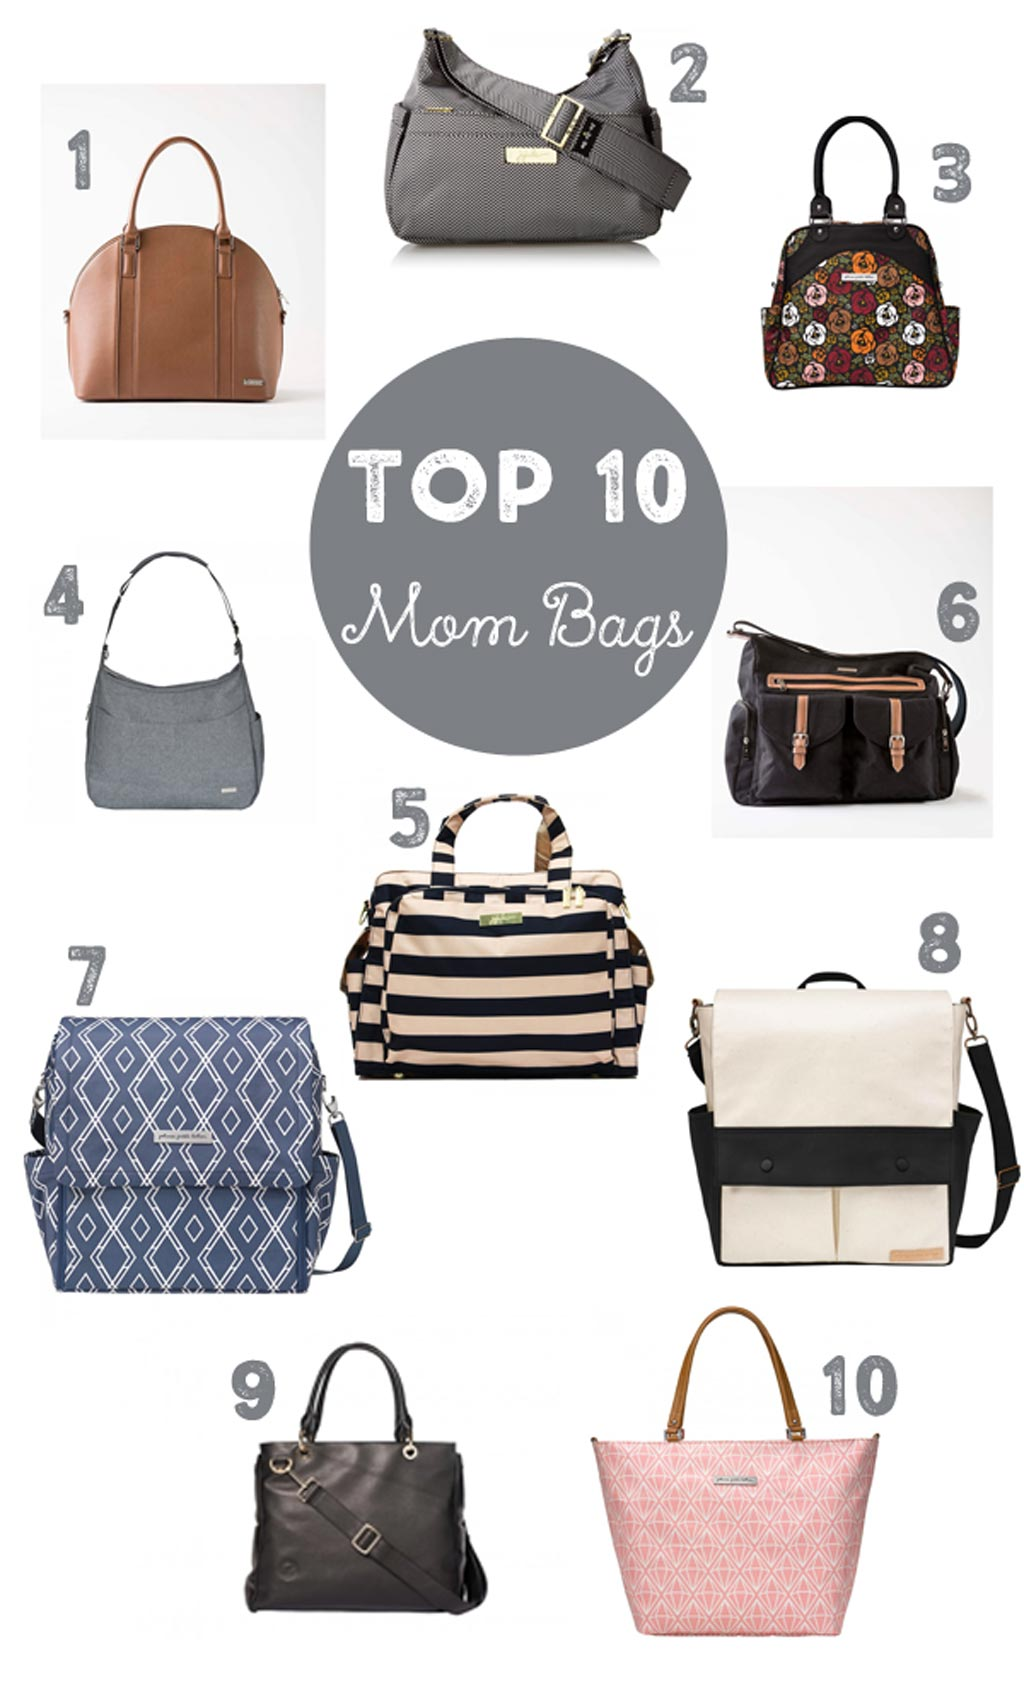 Top 10 Mom Bags Diaper For All Stages Of Motherhood Even A Bag